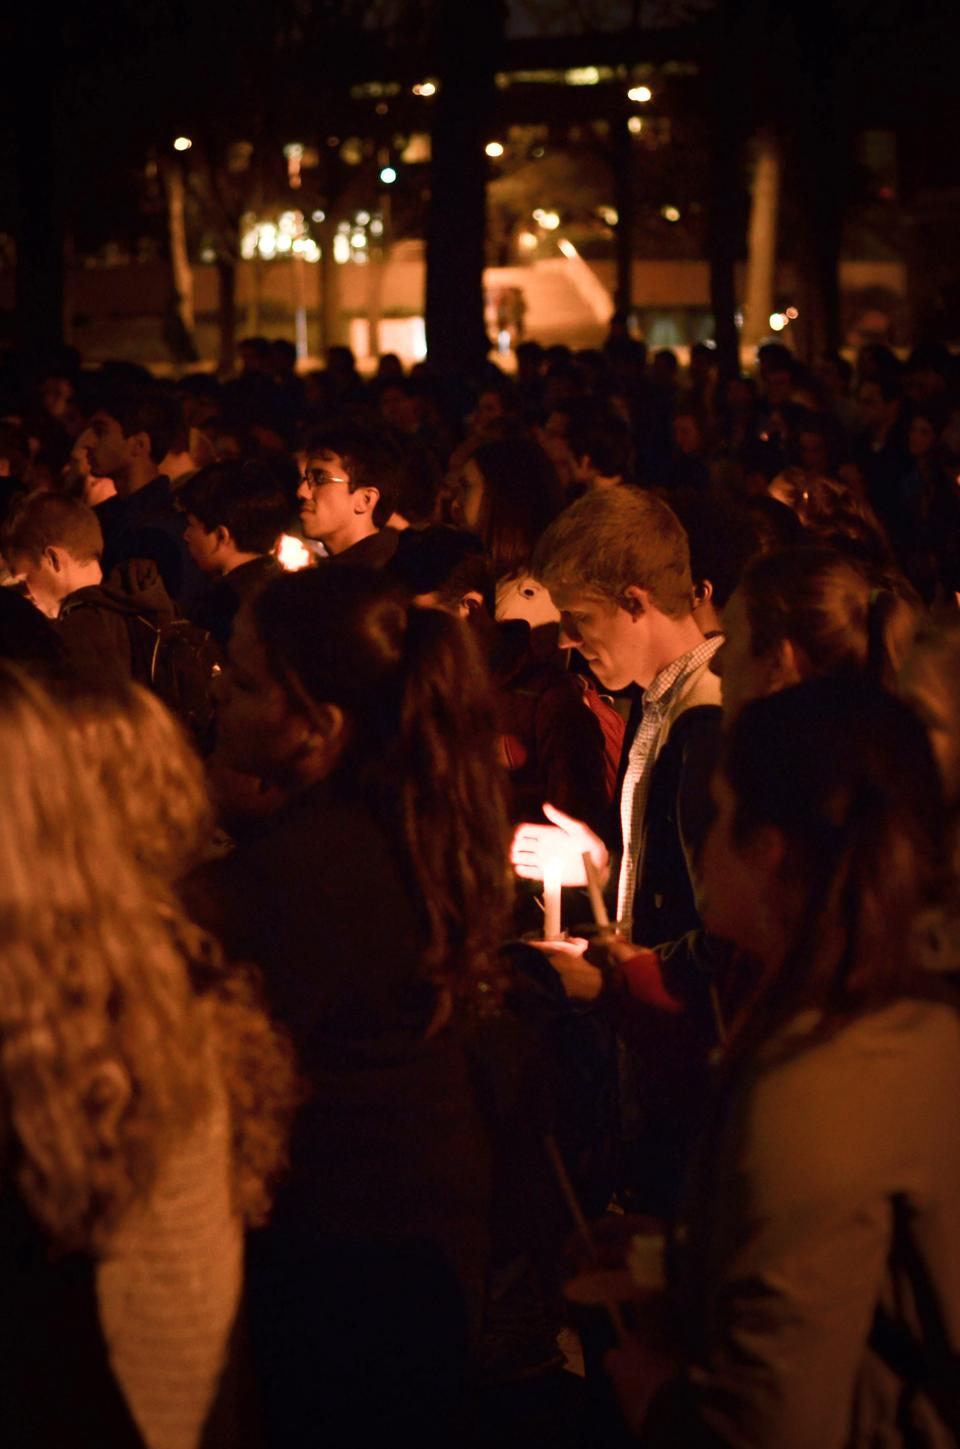 Members of the Harvard community gather outside Memorial Church at a candlelight vigil to commemorate all those who suffer as a result of the Boston Marathon explosion.